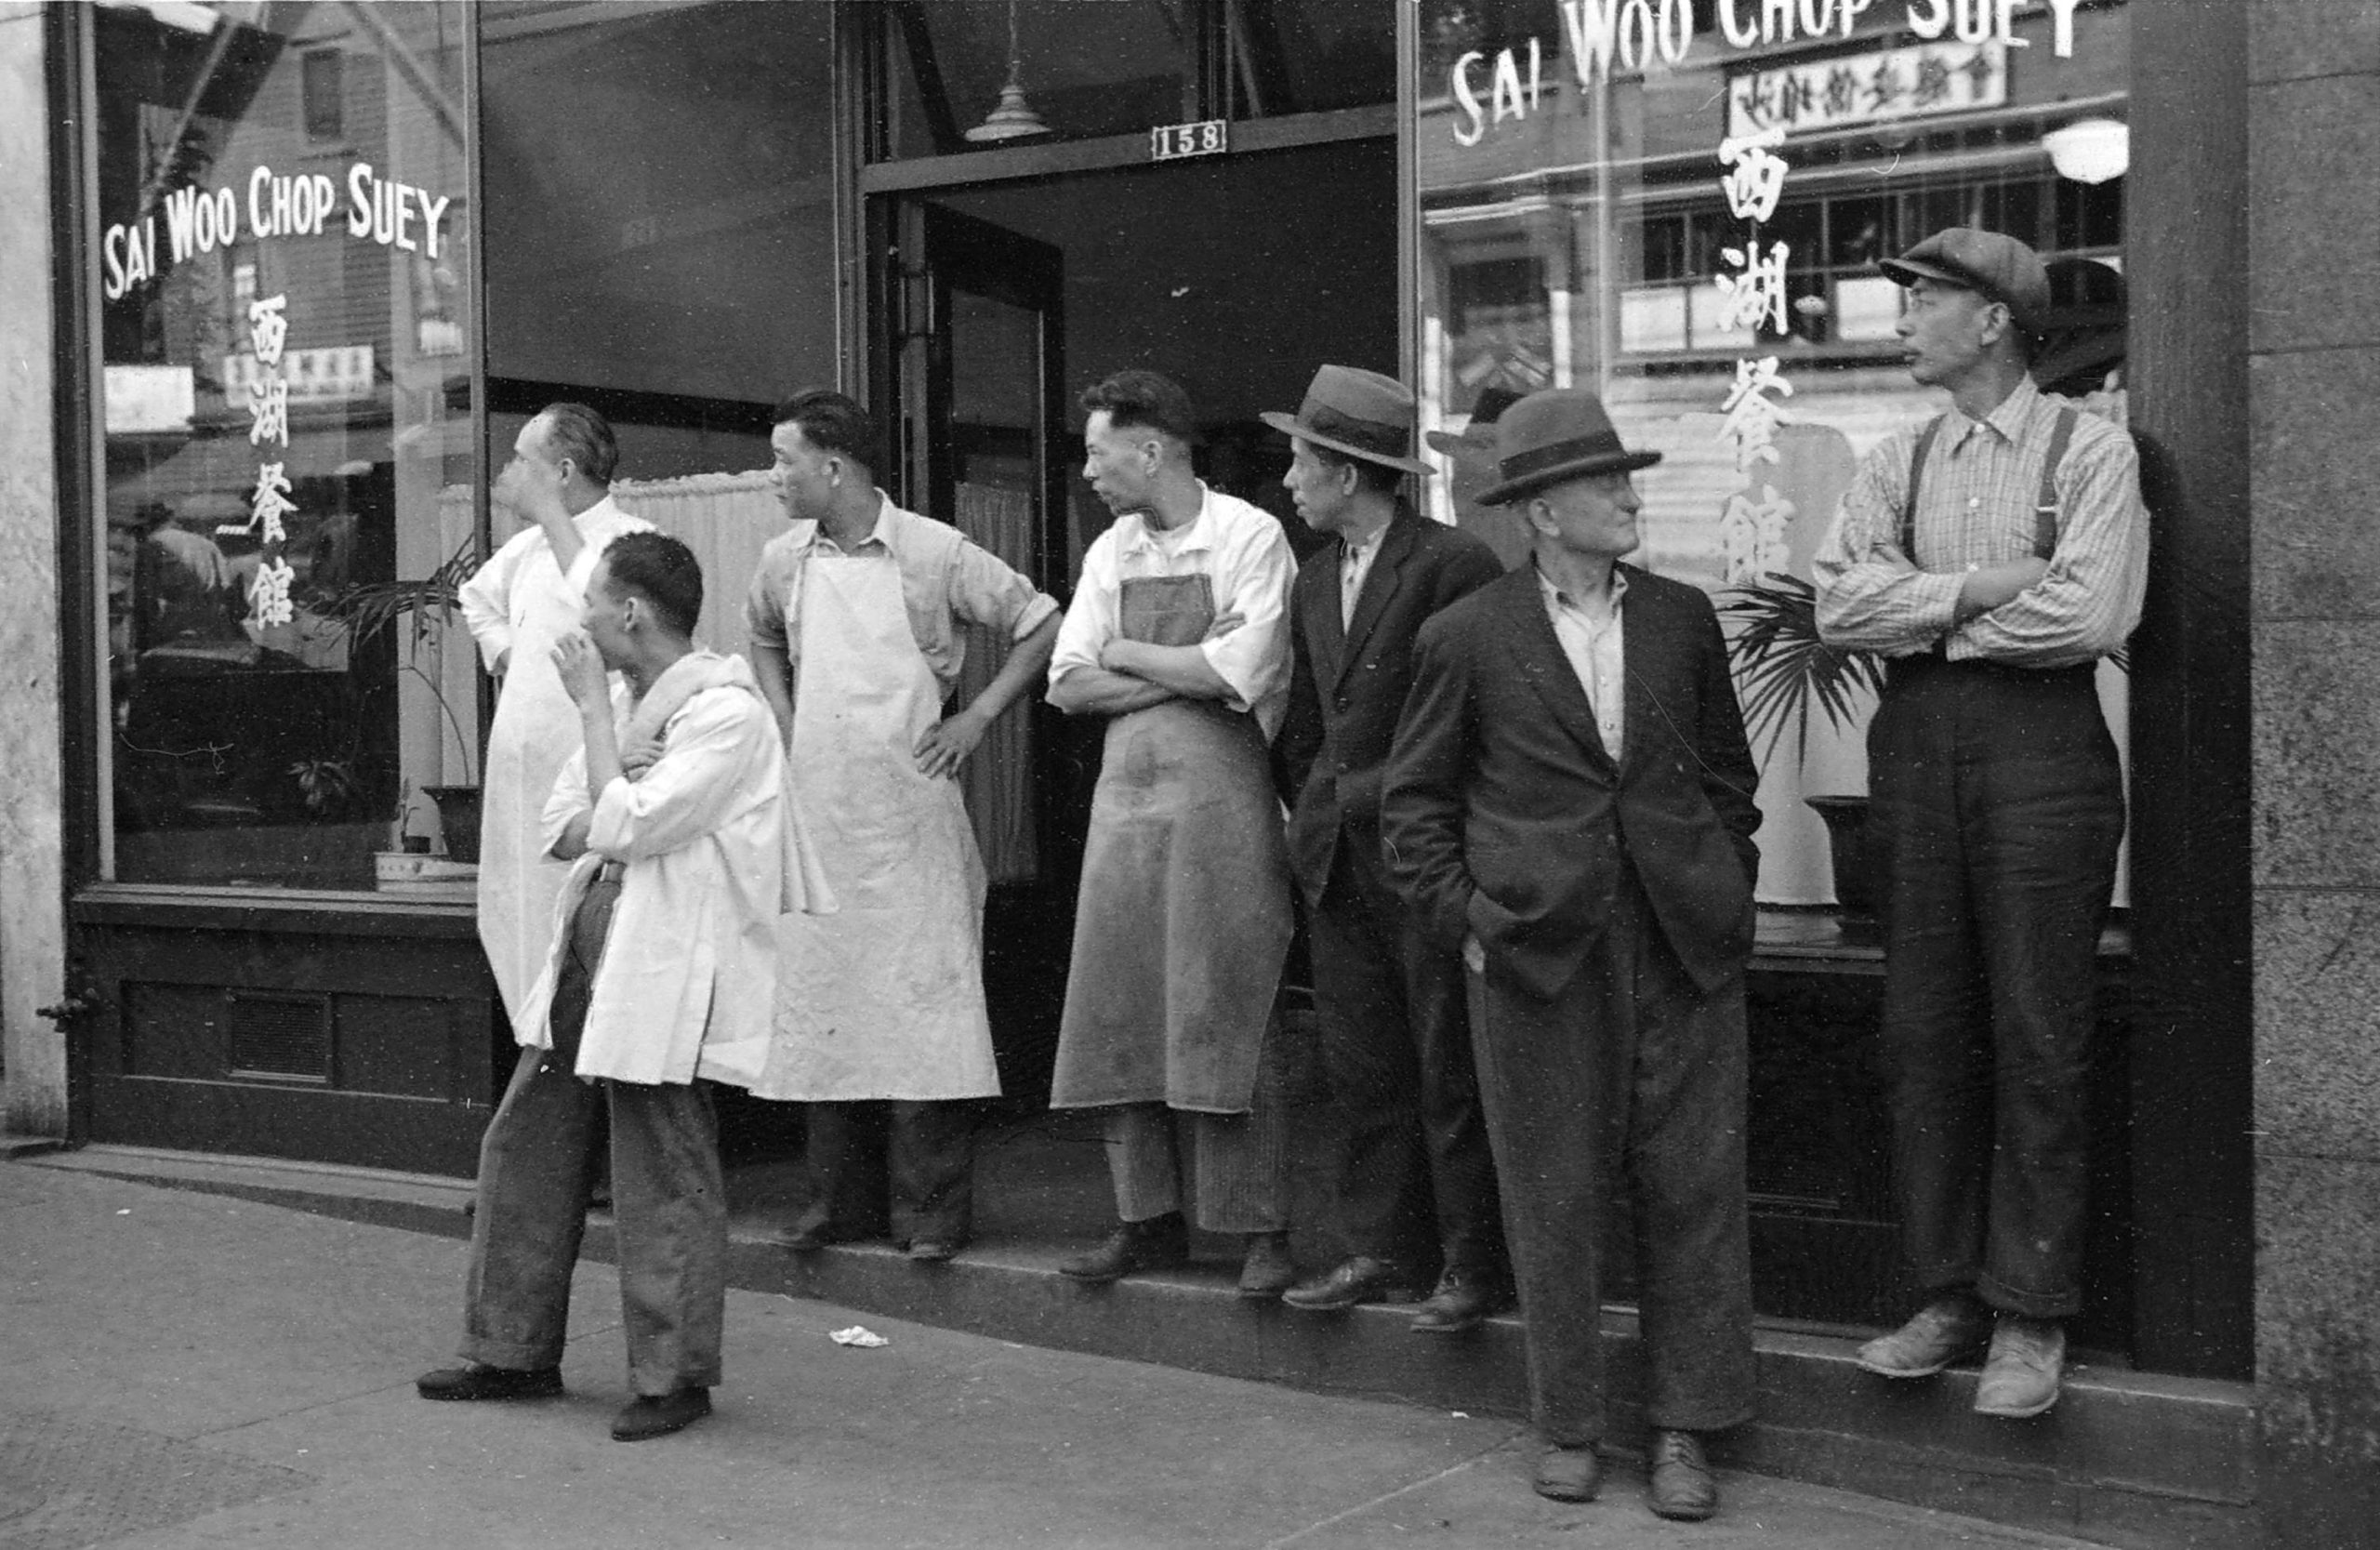 Seven men stand outside a restaurant, some dressed like kitchen workers and others in suits.